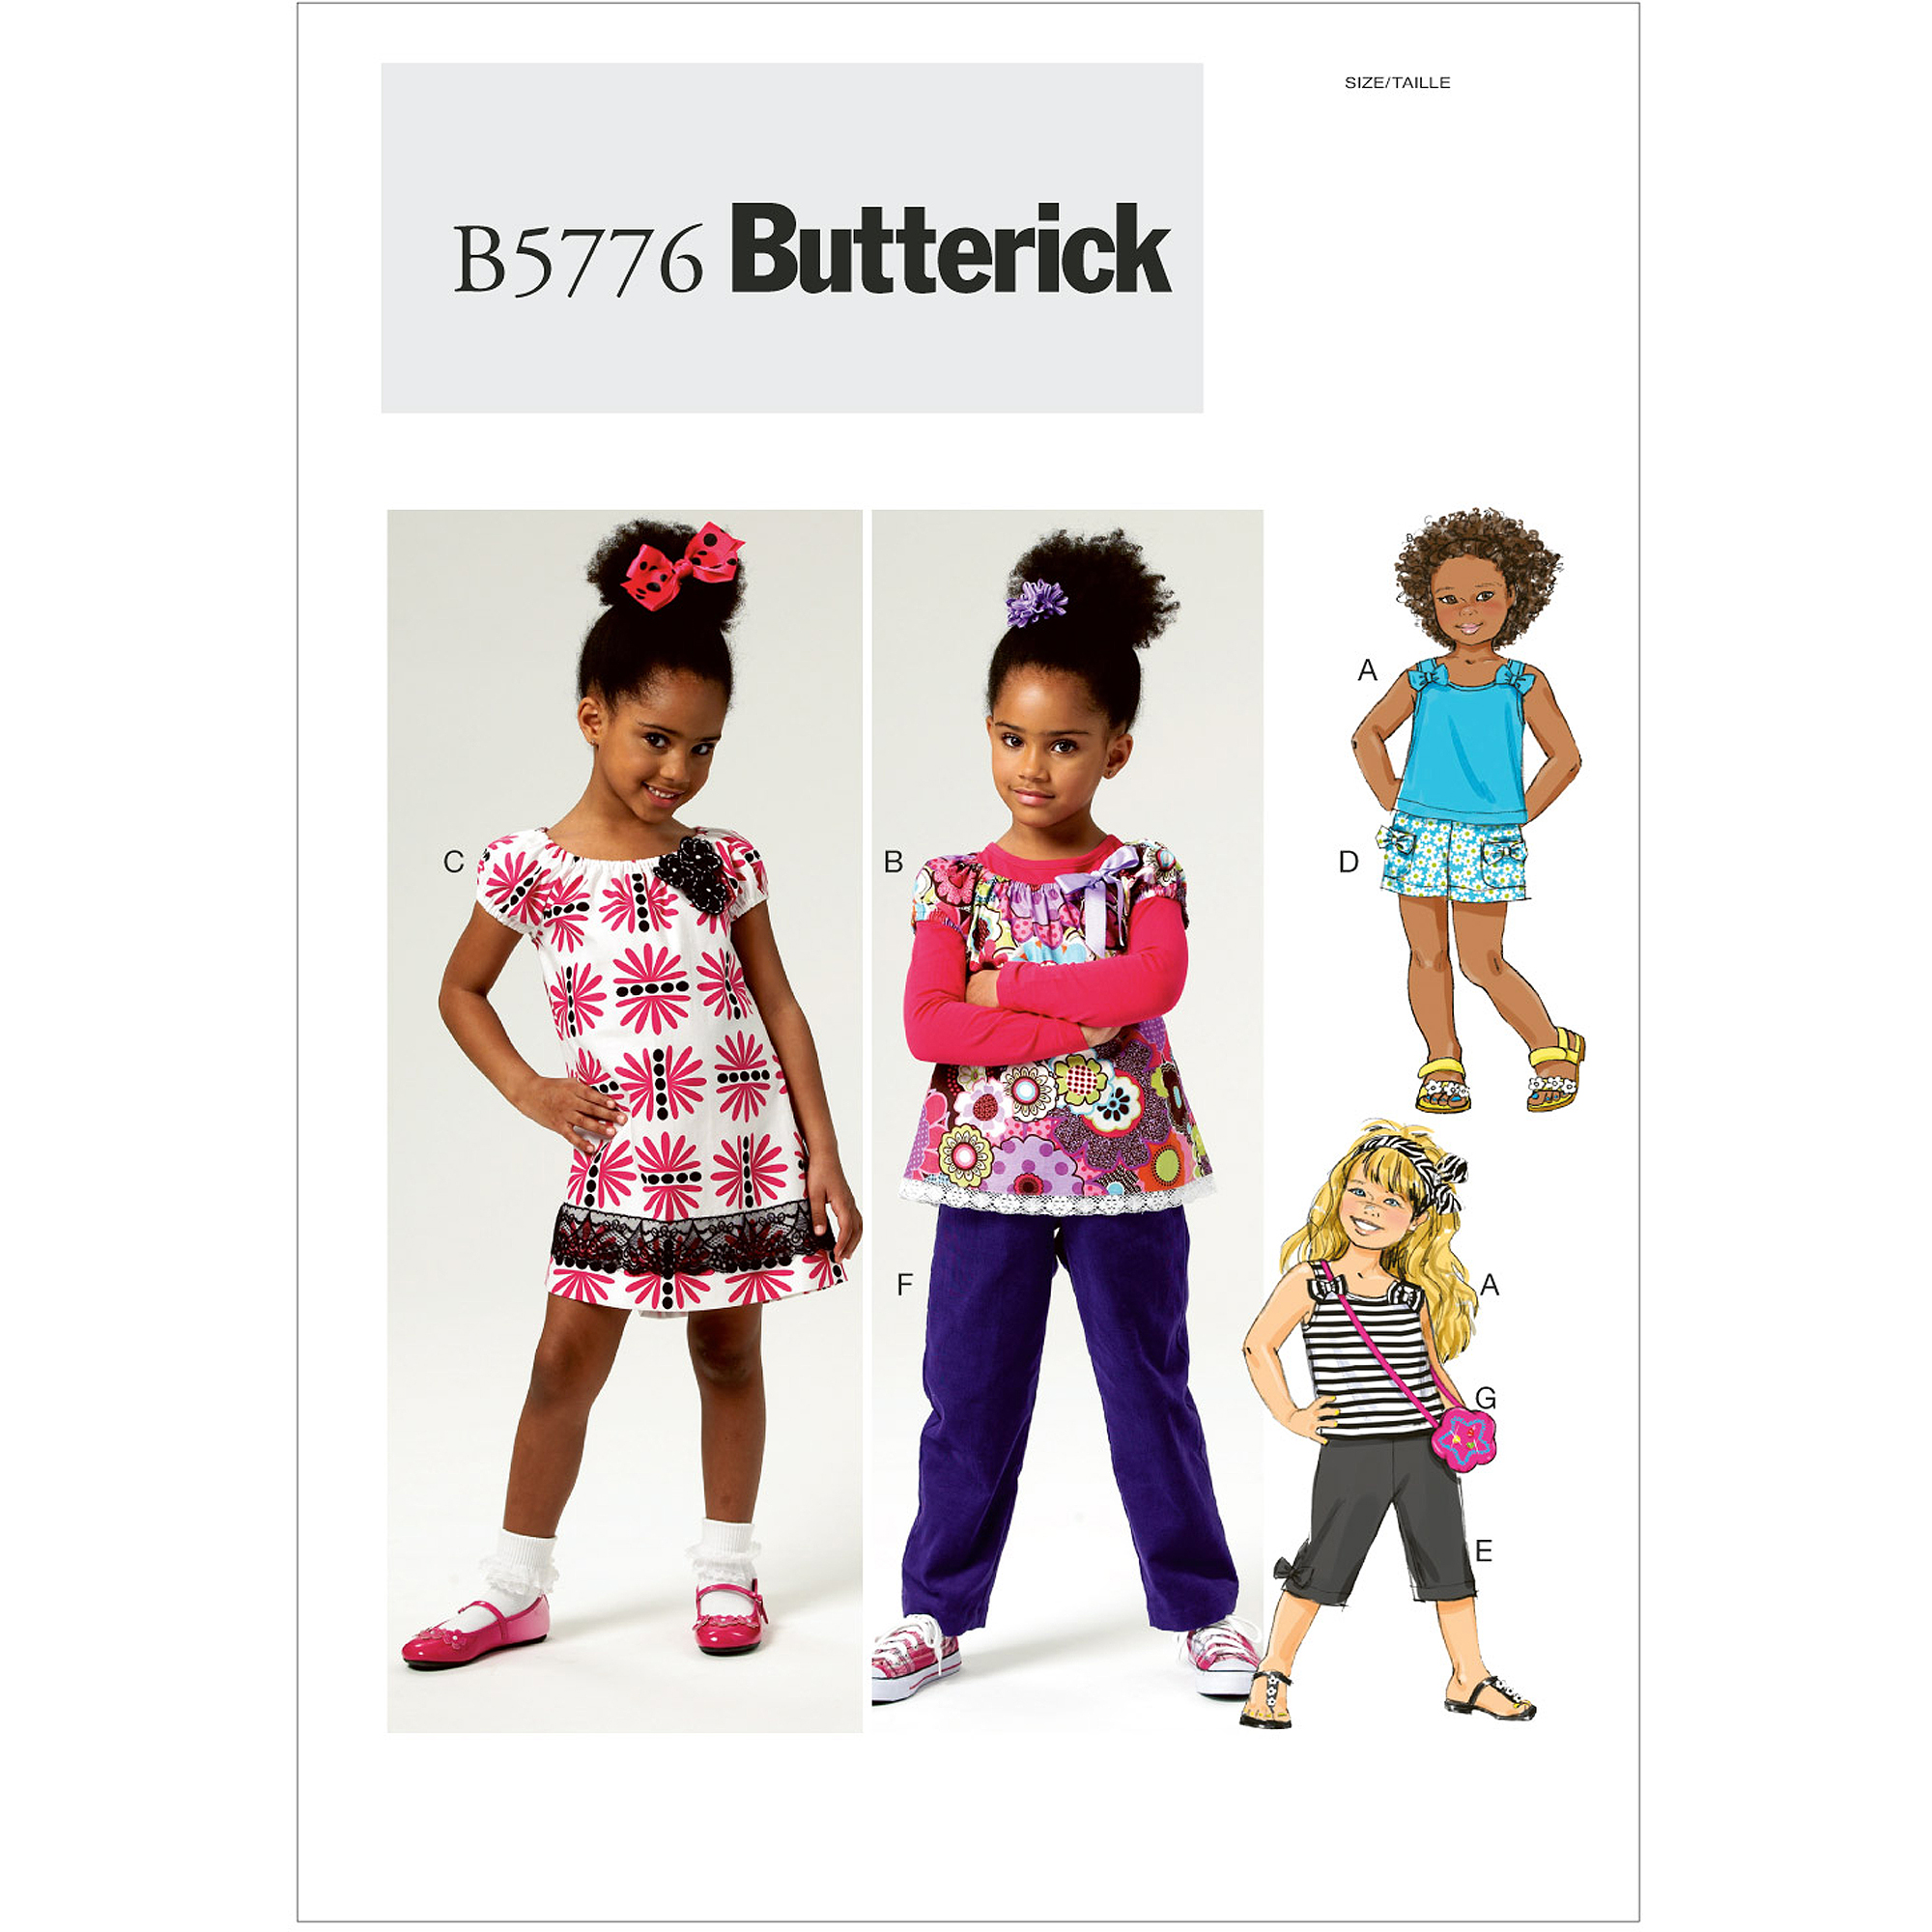 Butterick Pattern Children's and Girls' Top, Dress, Shorts, Pants and Bag, CL (6, 7, 8)